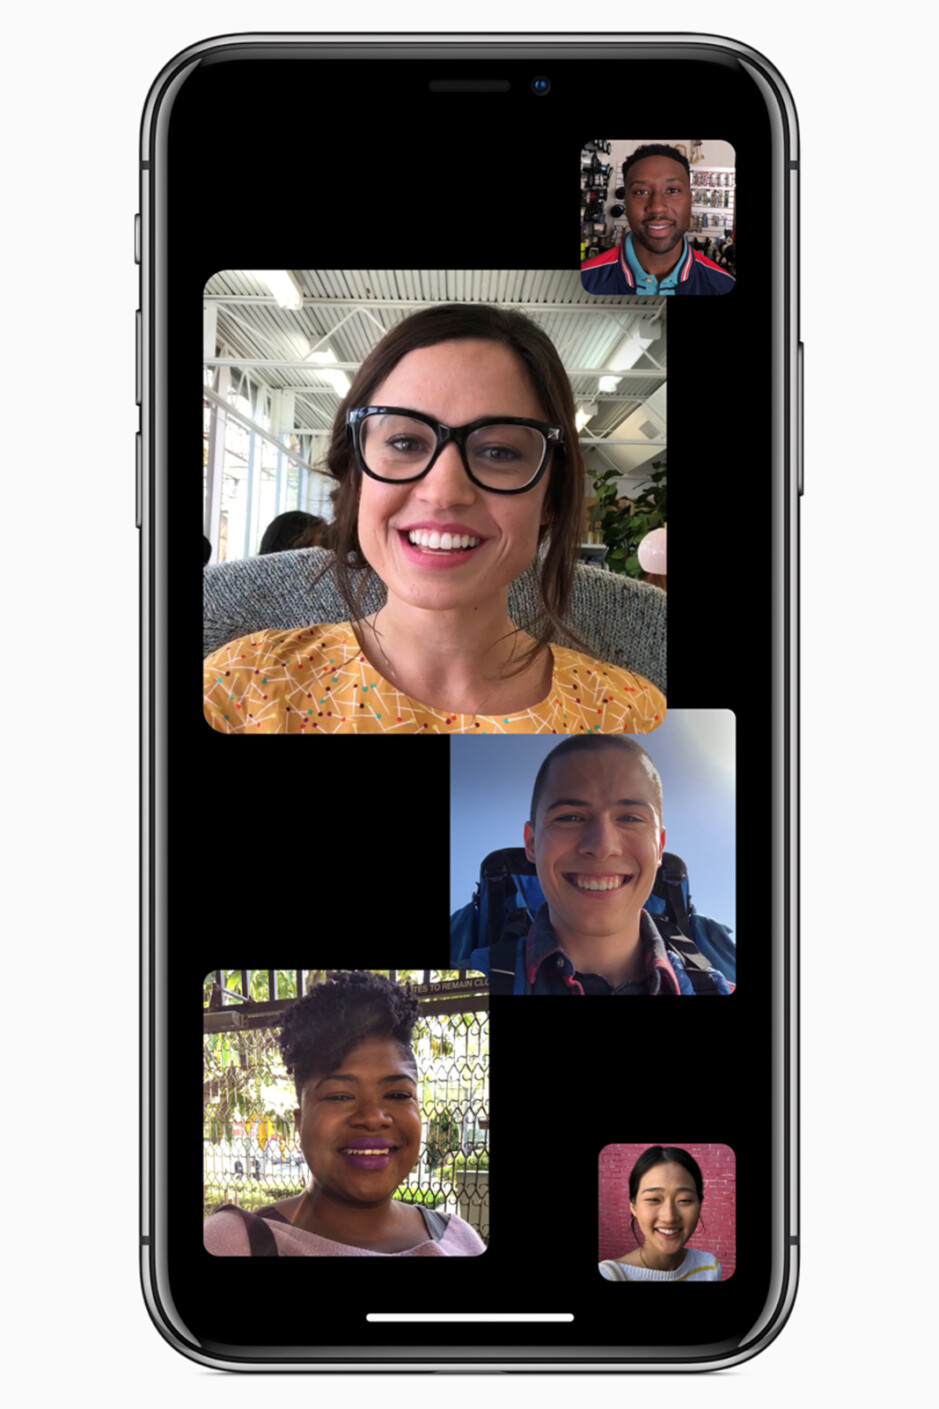 Apple's FaceTime gets a huge upgrade: video conferencing with up to 32 people